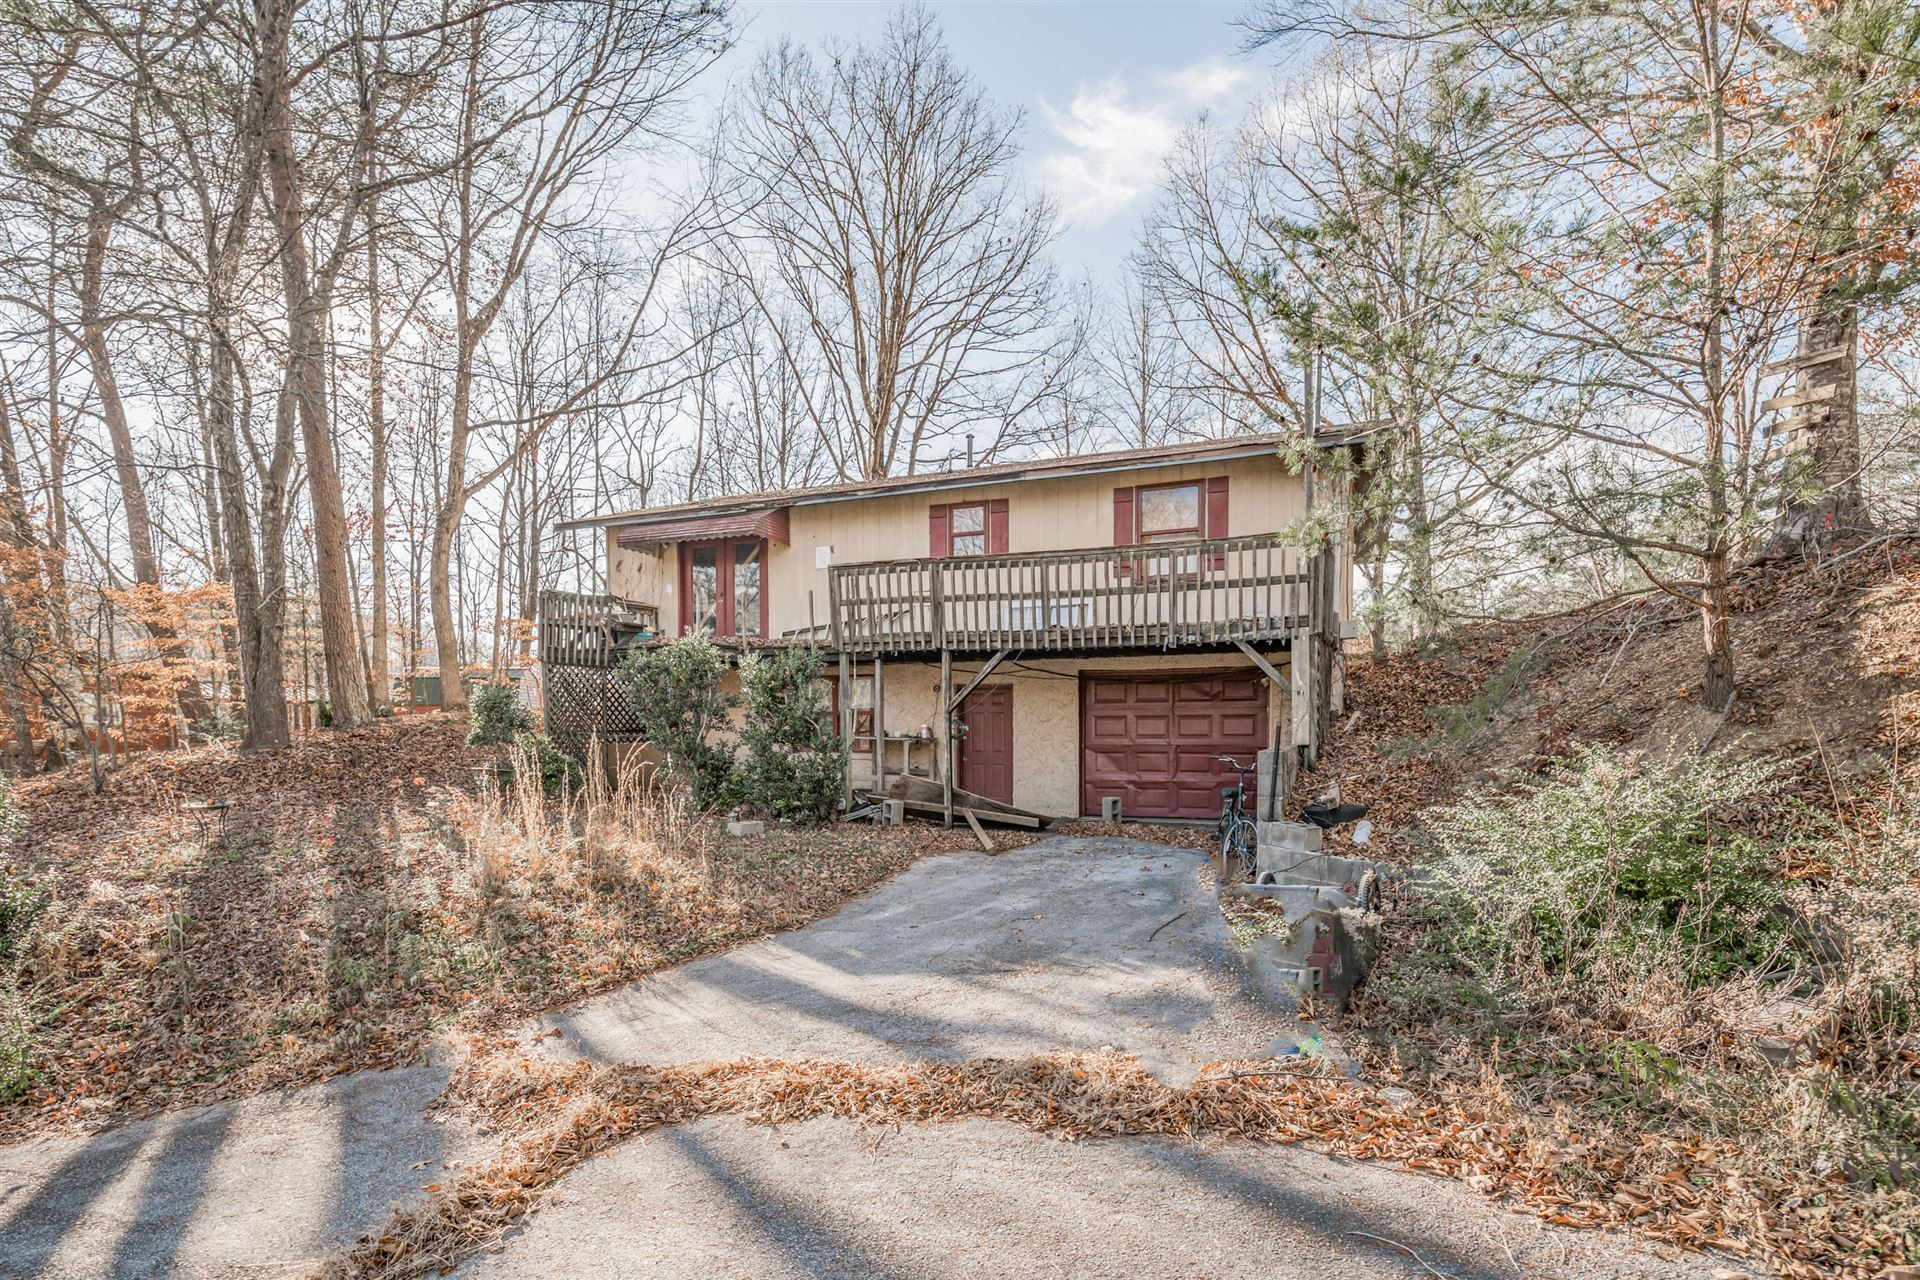 Photo of 2122 Hickory Manor Rd, Sevierville, TN 37862 (MLS # 1140968)